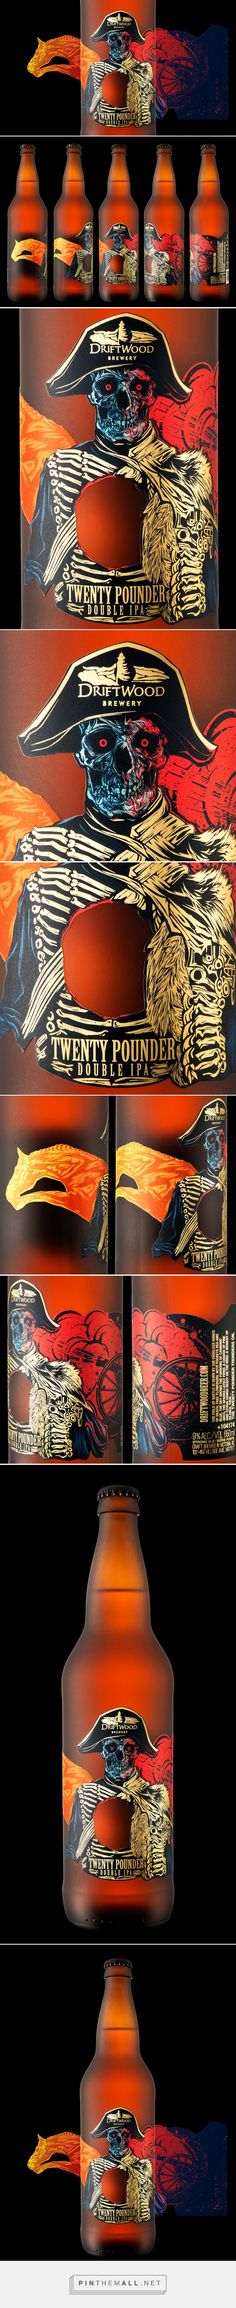 Twenty Pounder Double IPA with a hole in label - #design by Hired Guns Creative (Canada) - http://www.packagingoftheworld.com/2016/05/twenty-pounder-double-ipa.html